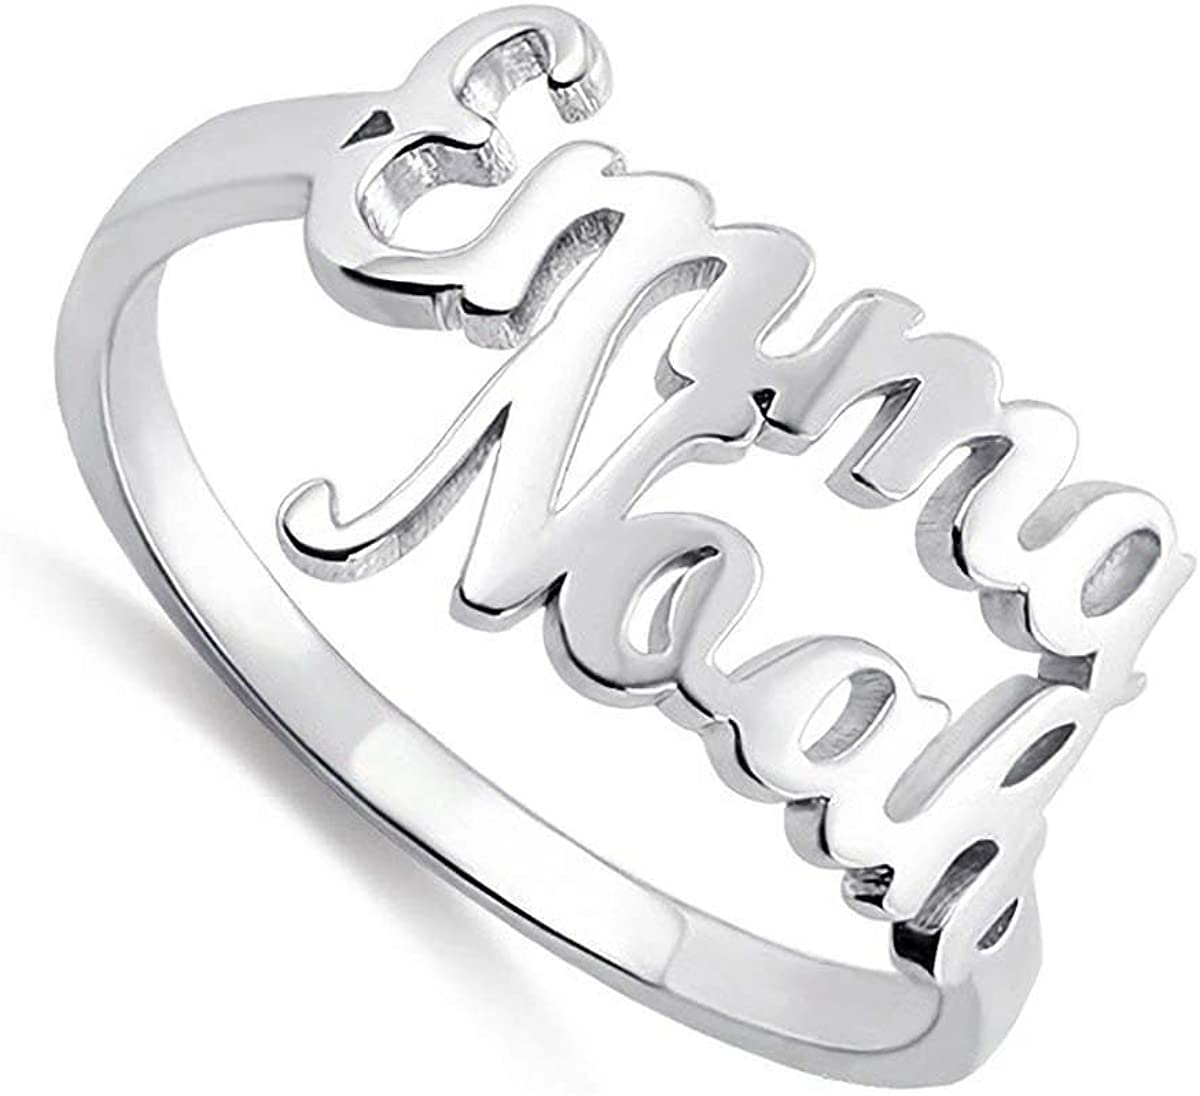 URONE Personalized Name Ring Special price for a All stores are sold limited time Sterling Silver Two R Engraved